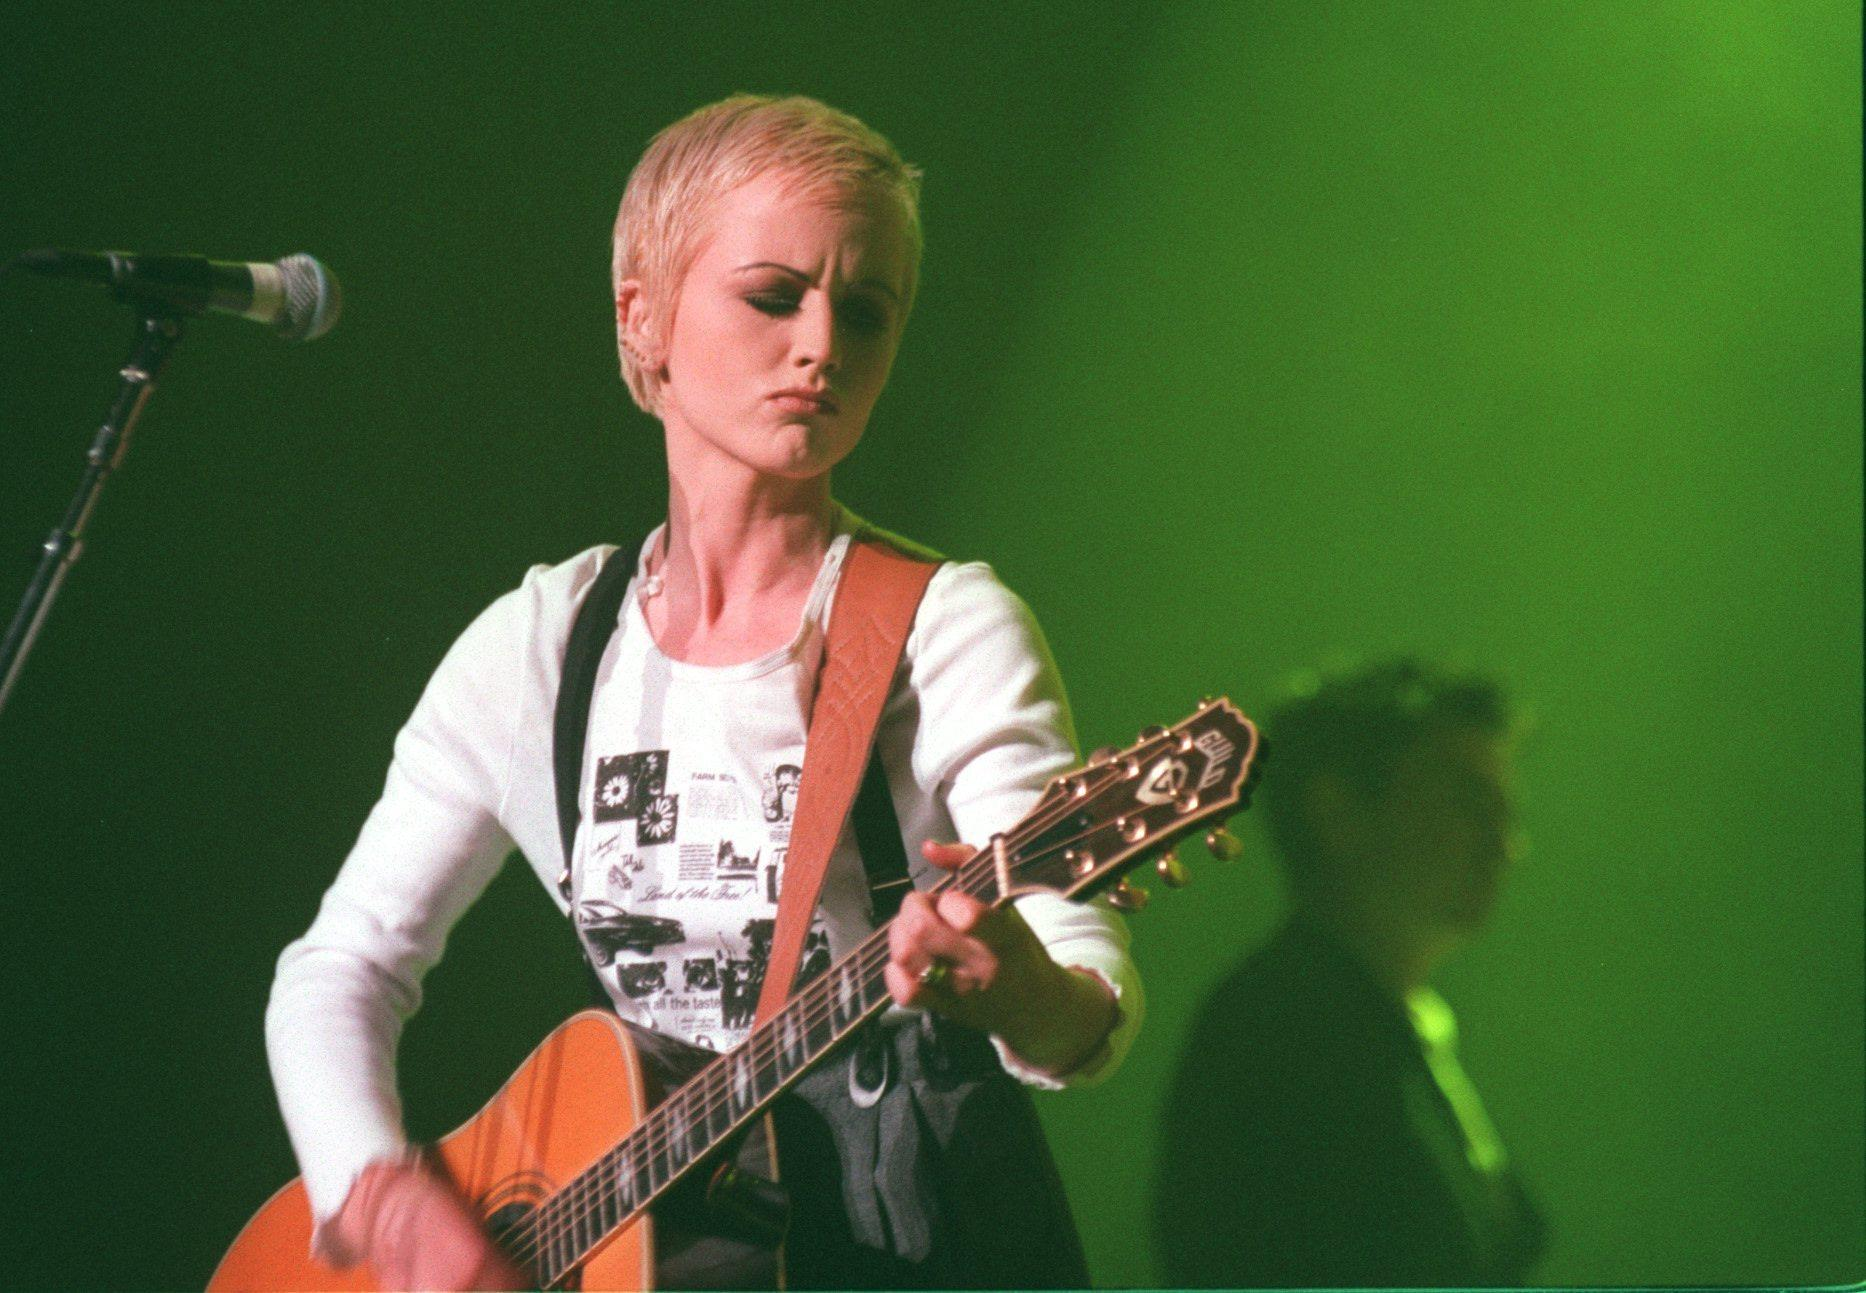 As Dolores O'Riordan's sudden death is ruled unsuspicious. musicians pay tribute to Cranberries frontwoman - Chicago Tribune